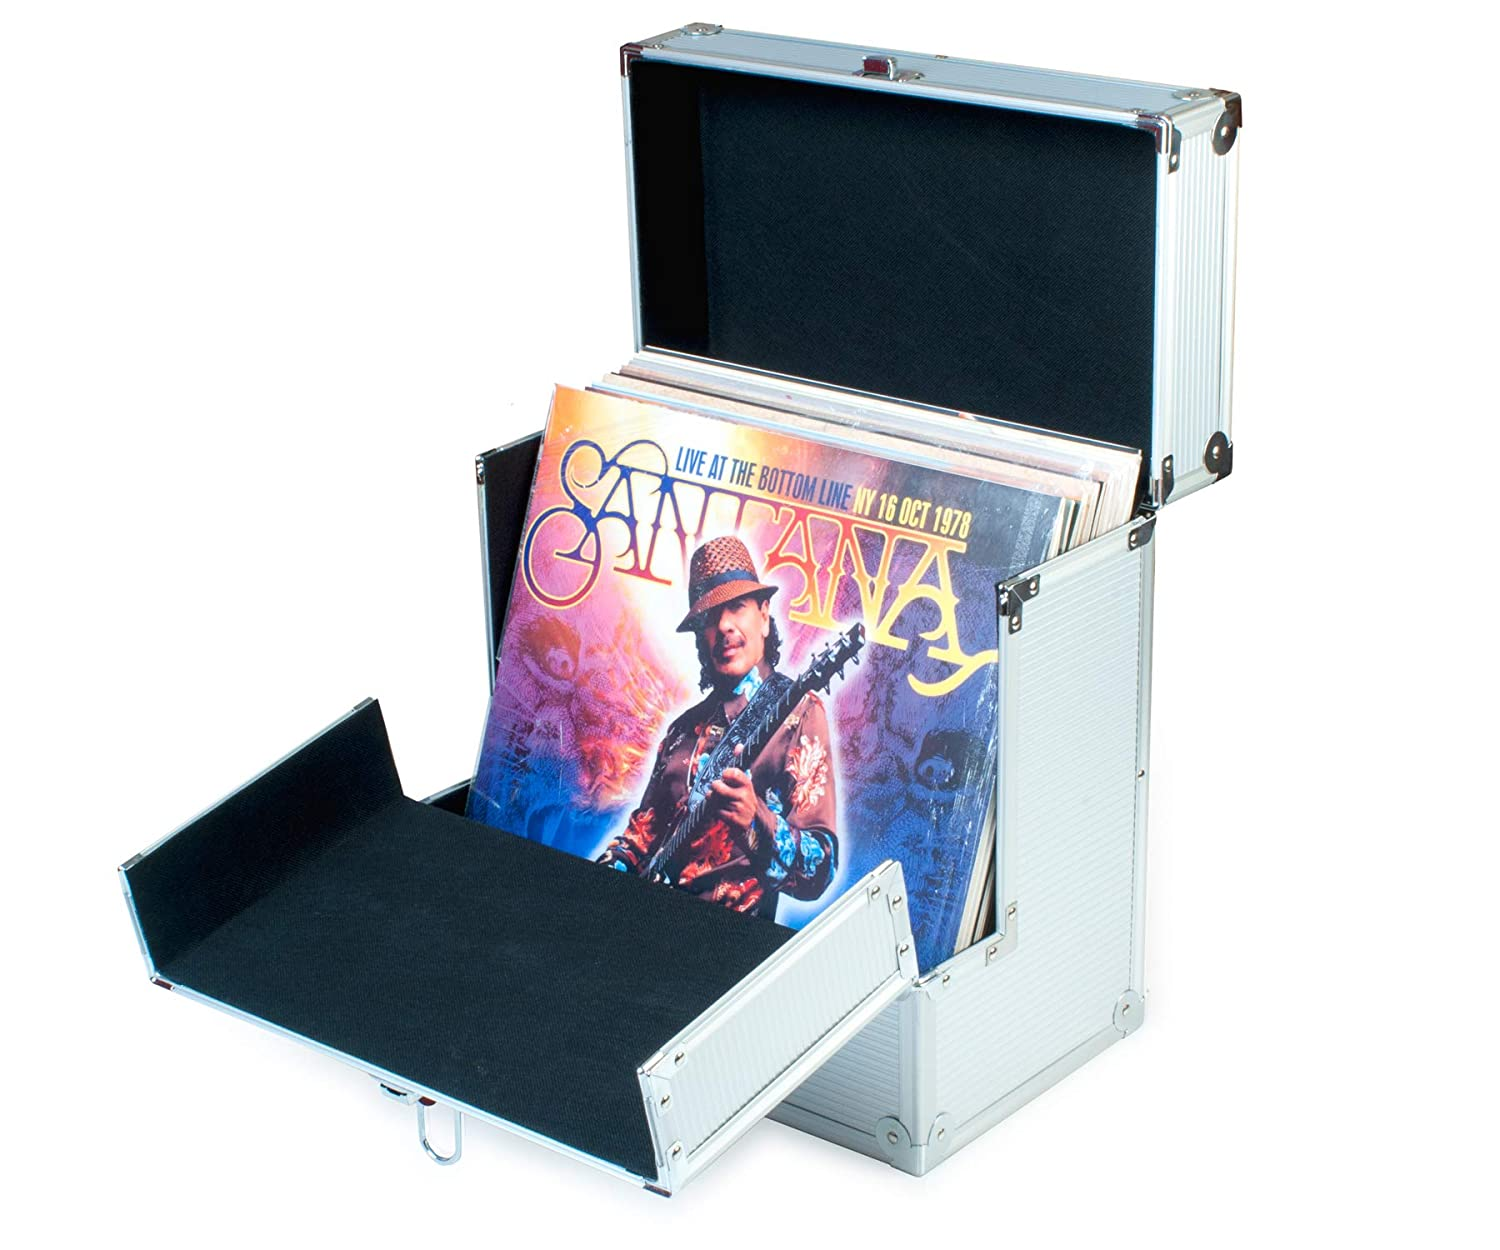 Aluminium Vinyl Record Storage Carrying Case by Retro Musique | Folding front flap gives better access to your LP's Karrex